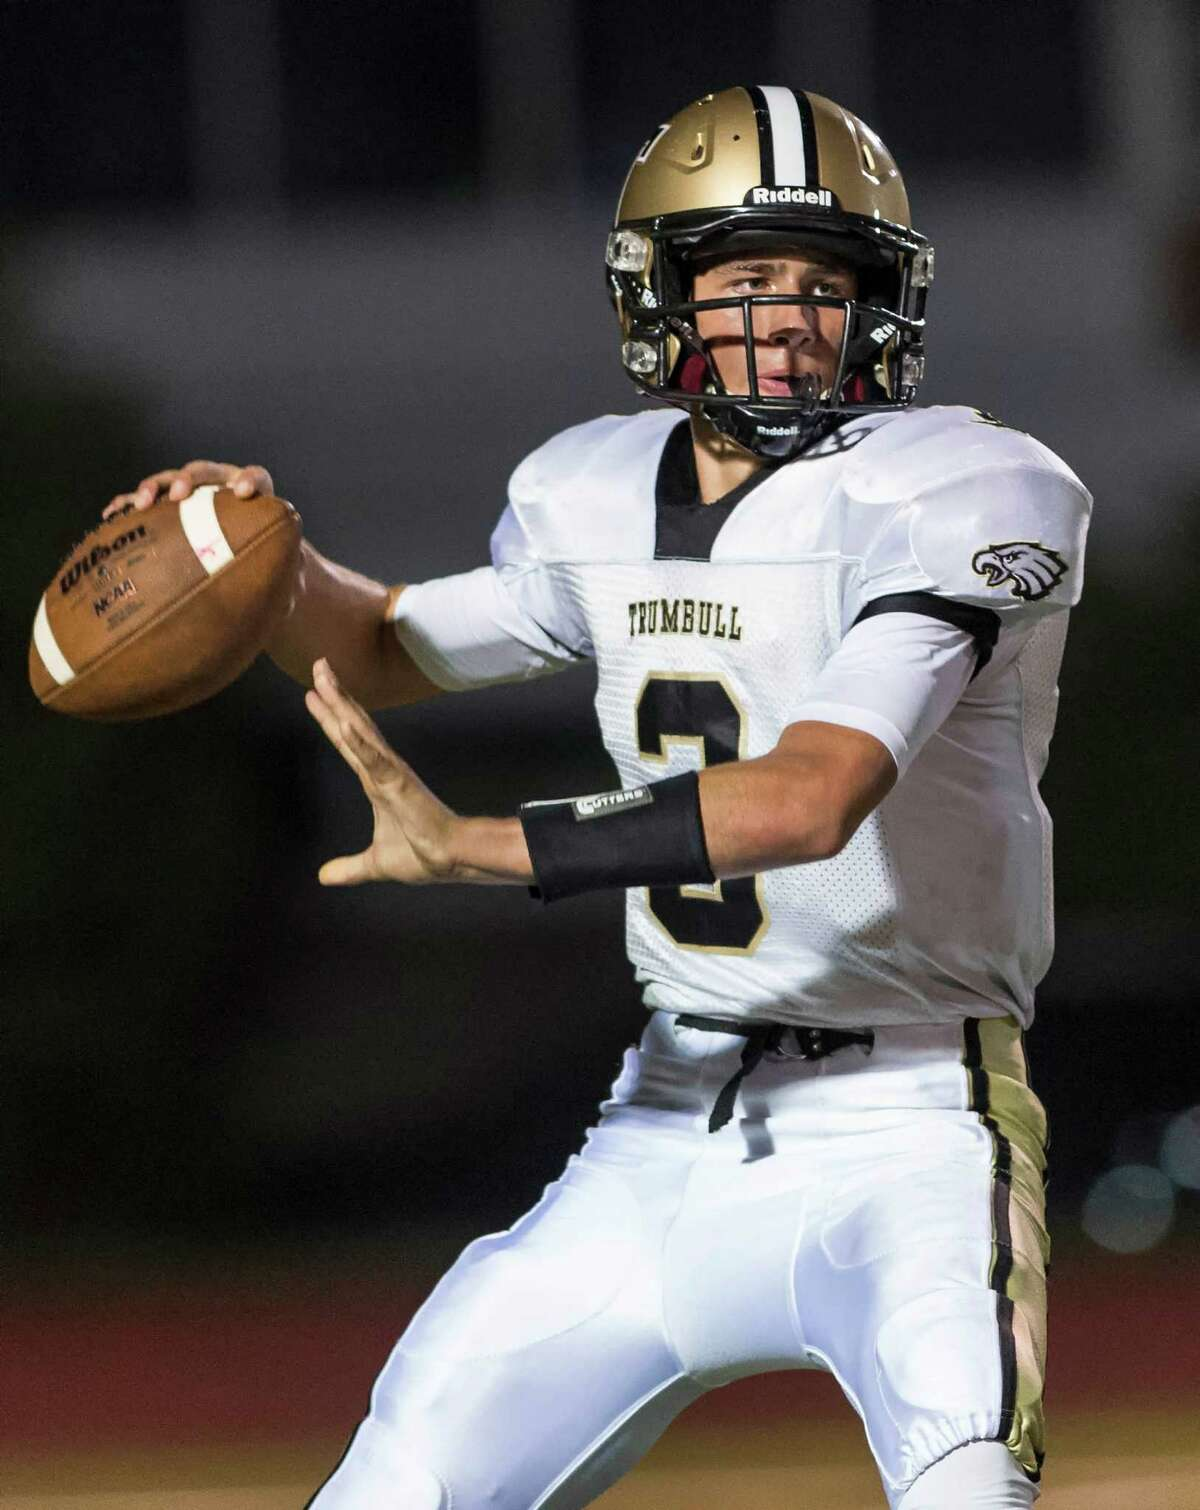 Trumbull quarterback John Mcelroy had been solid through three games, completing 56.1 percent of his passes to go along with a 4:1 TD:INT ratio in his team's run-first offense, but Friday was his coming out party. All four of the Eagles' touchdowns came through the air in a crucial 28-23 win over Greenwich, proving that Trumbull can sling it when need be.